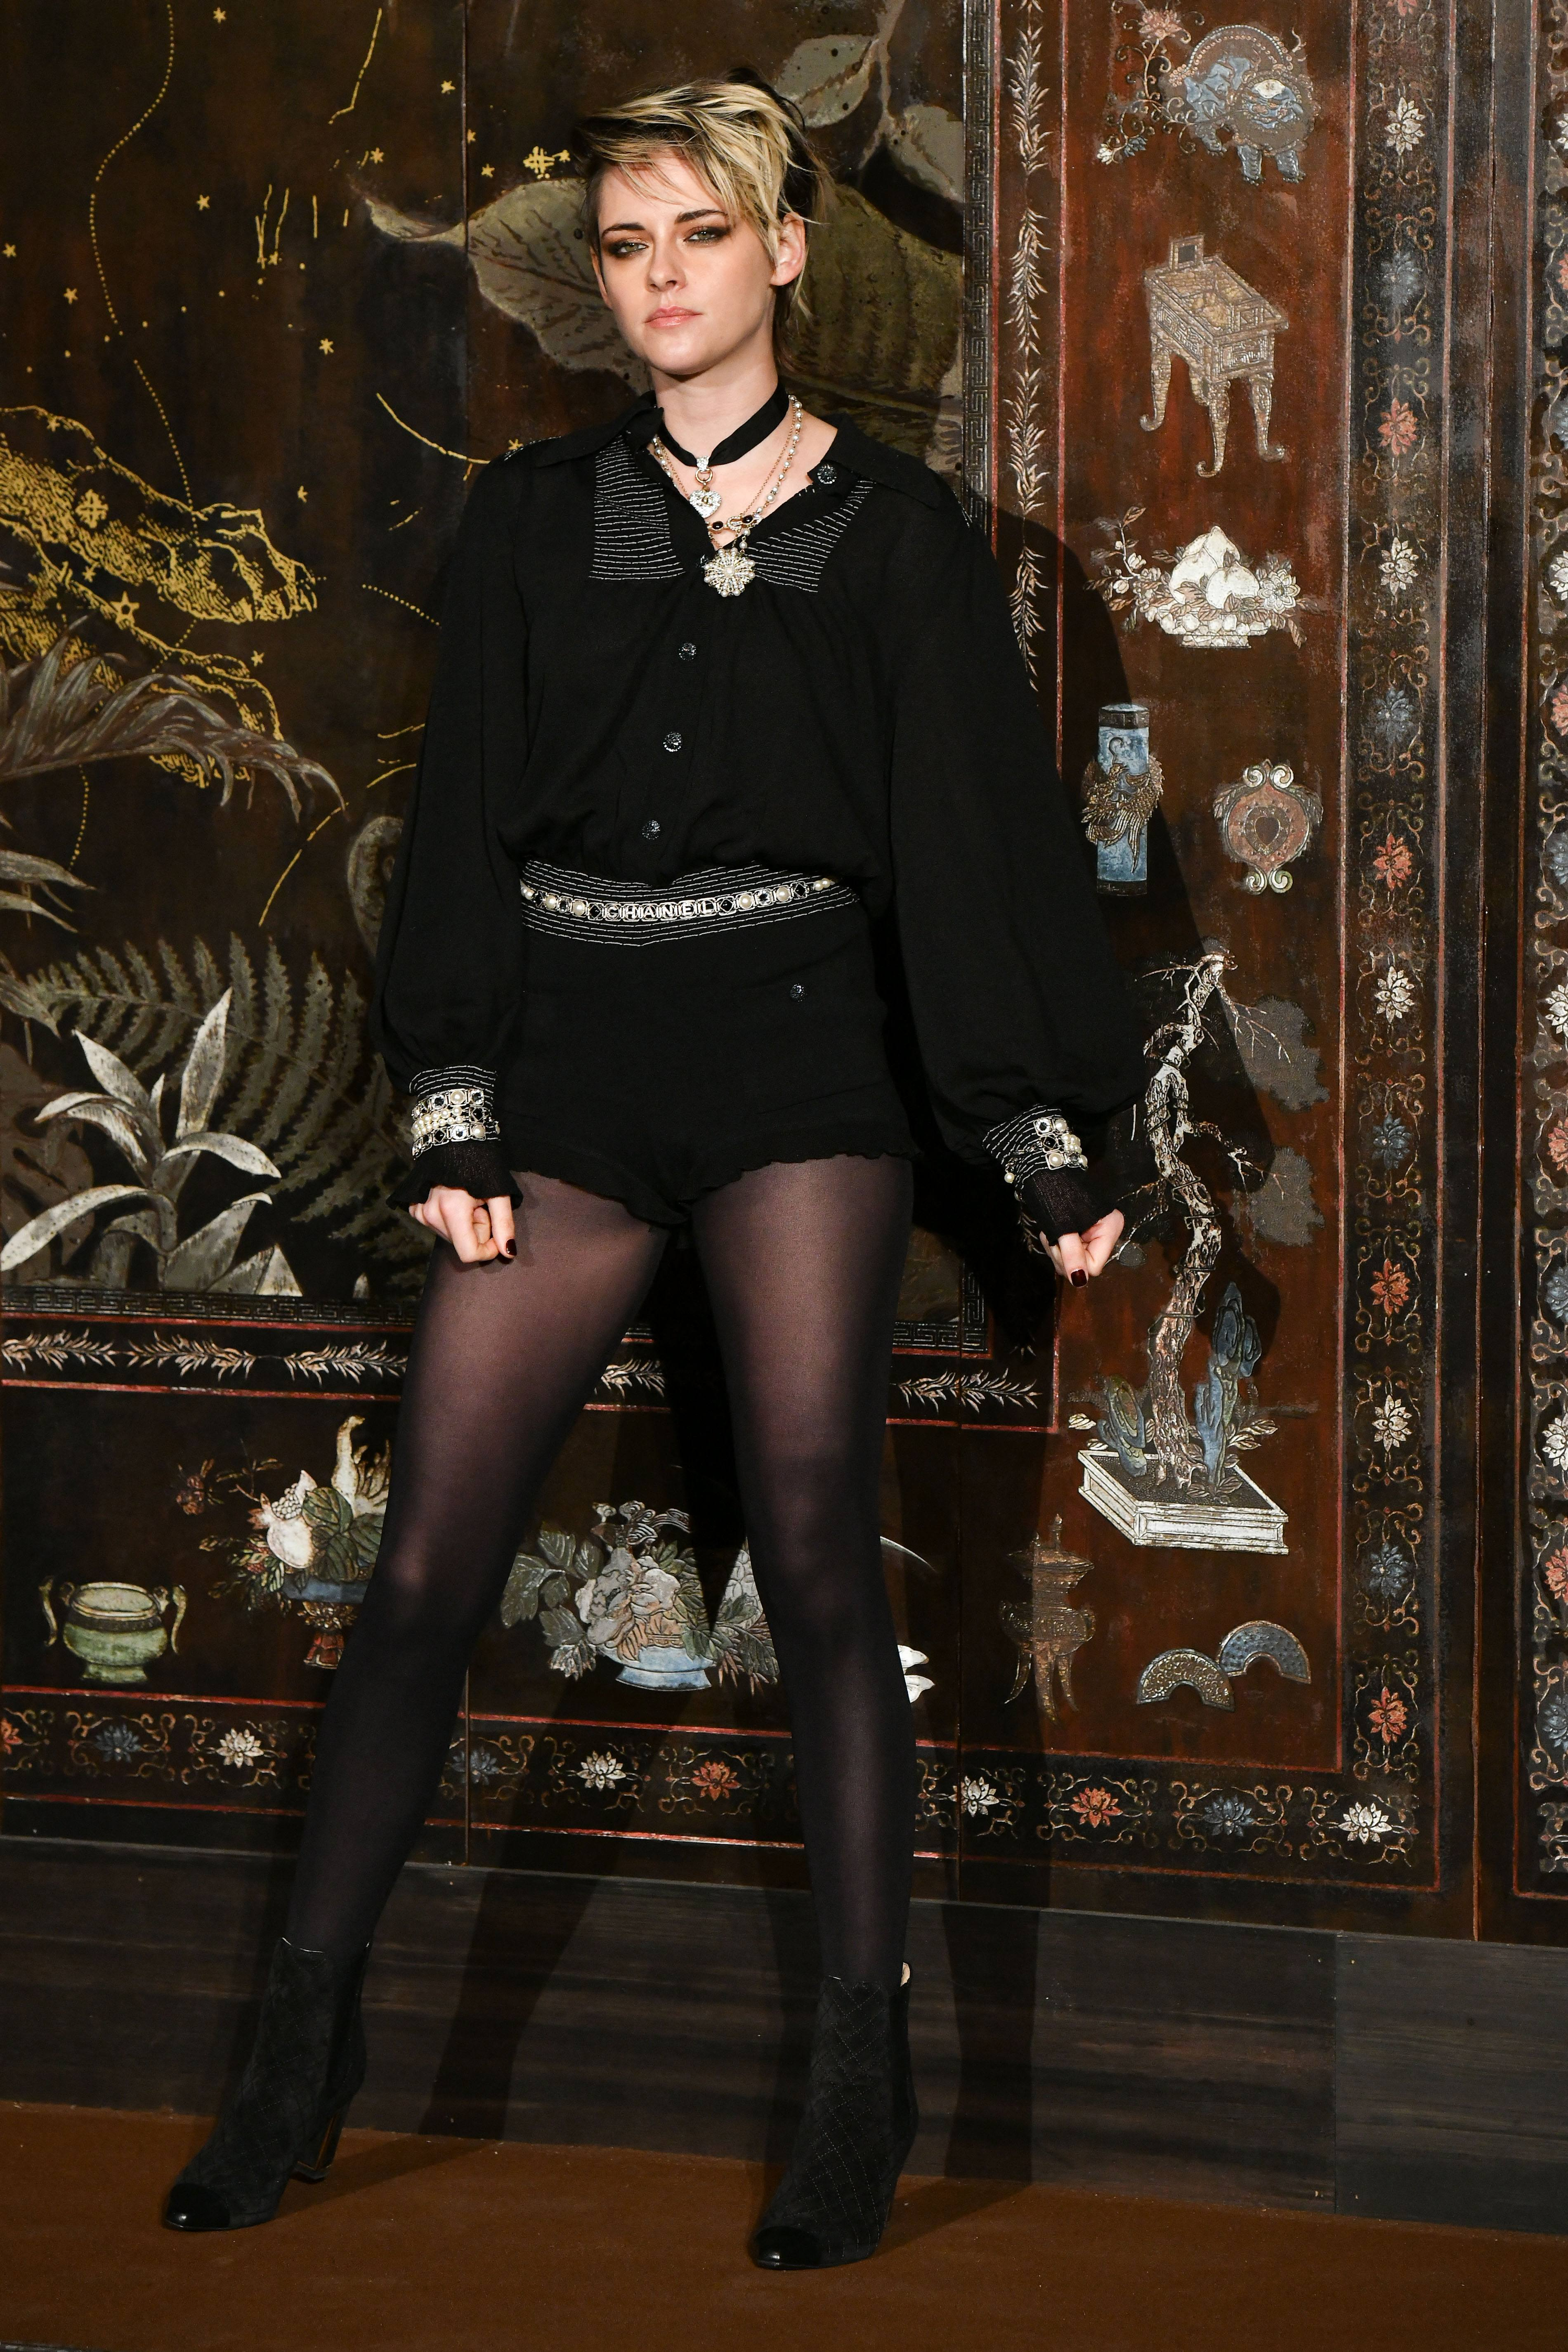 Kristen Stewart at Chanel Metiers d'art 2019-2020 Show in Paris